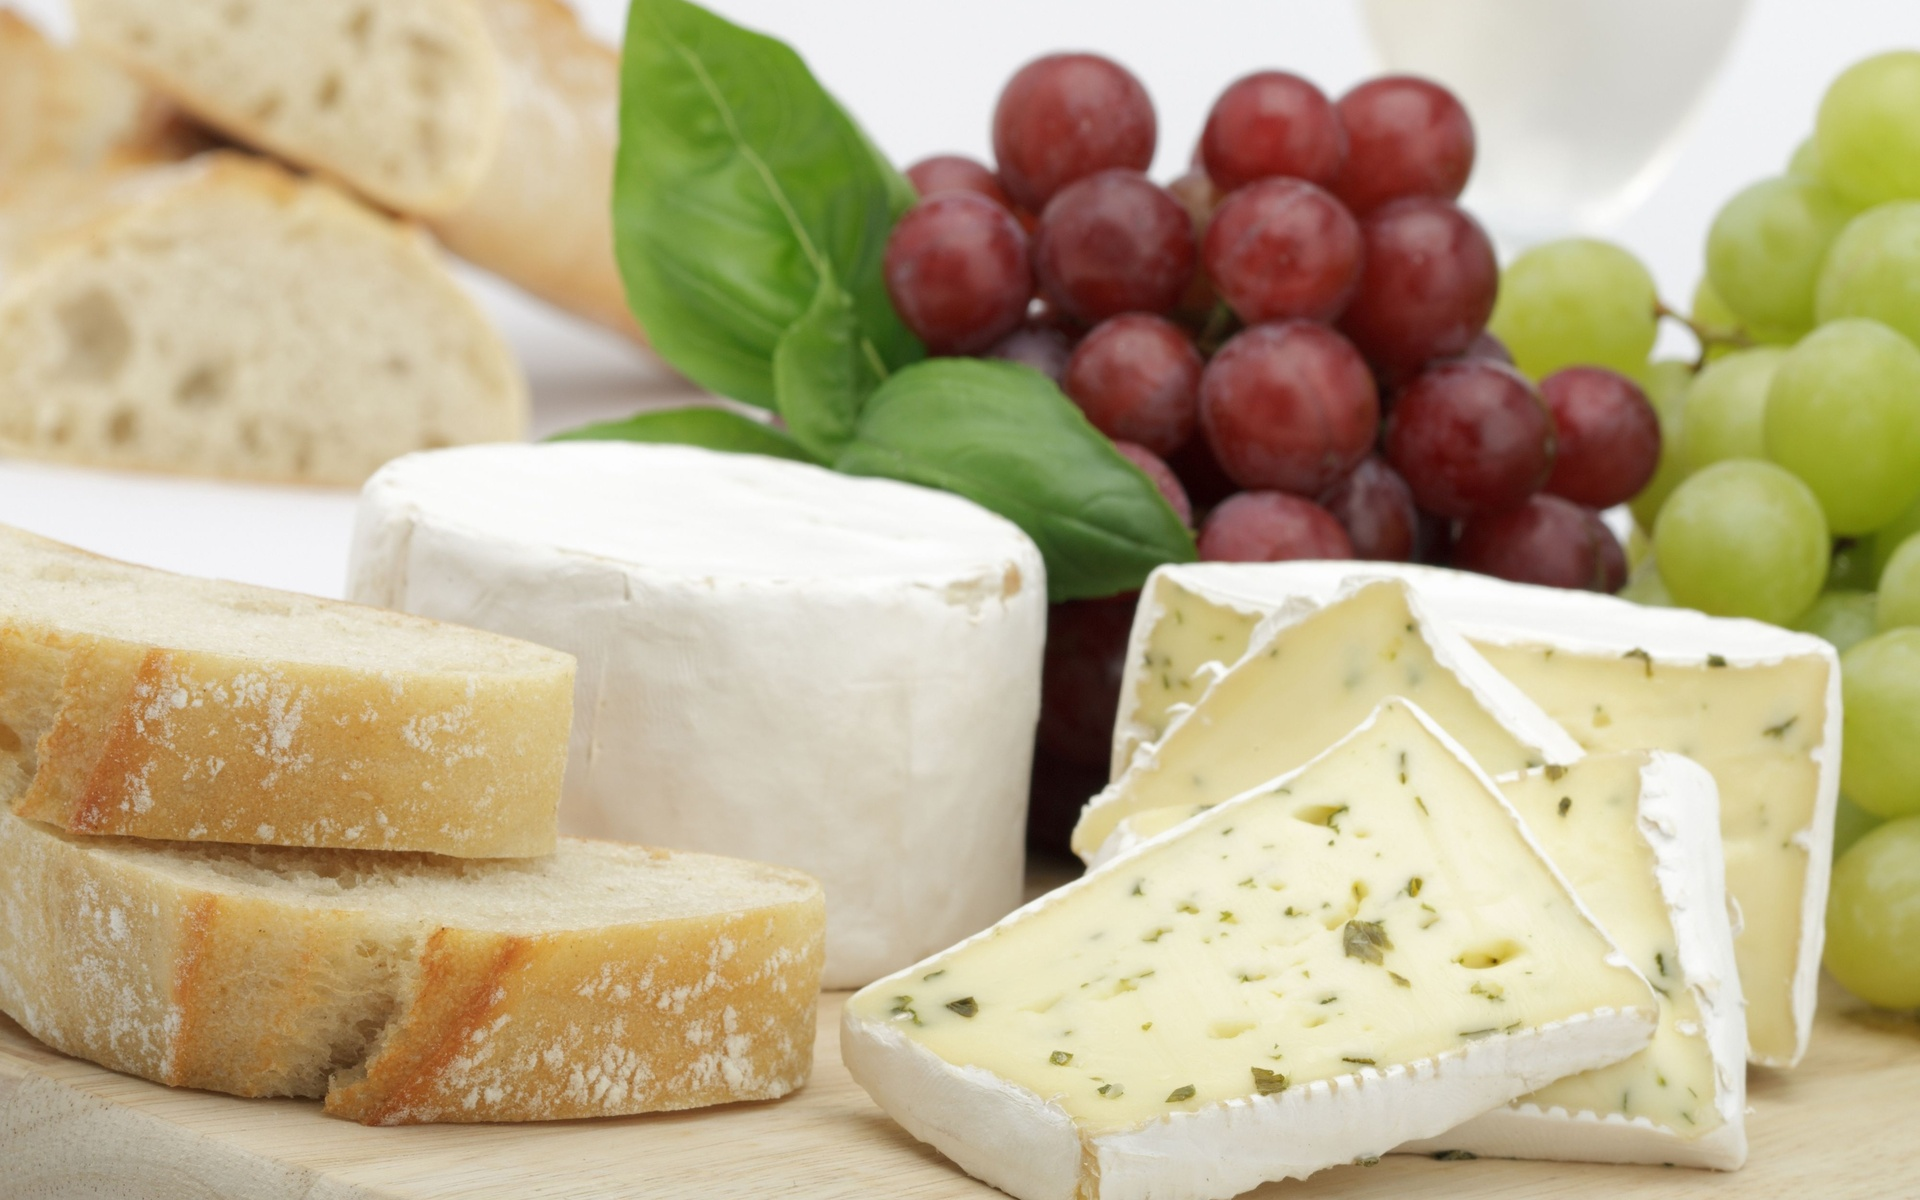 free cheese wallpaper 42953